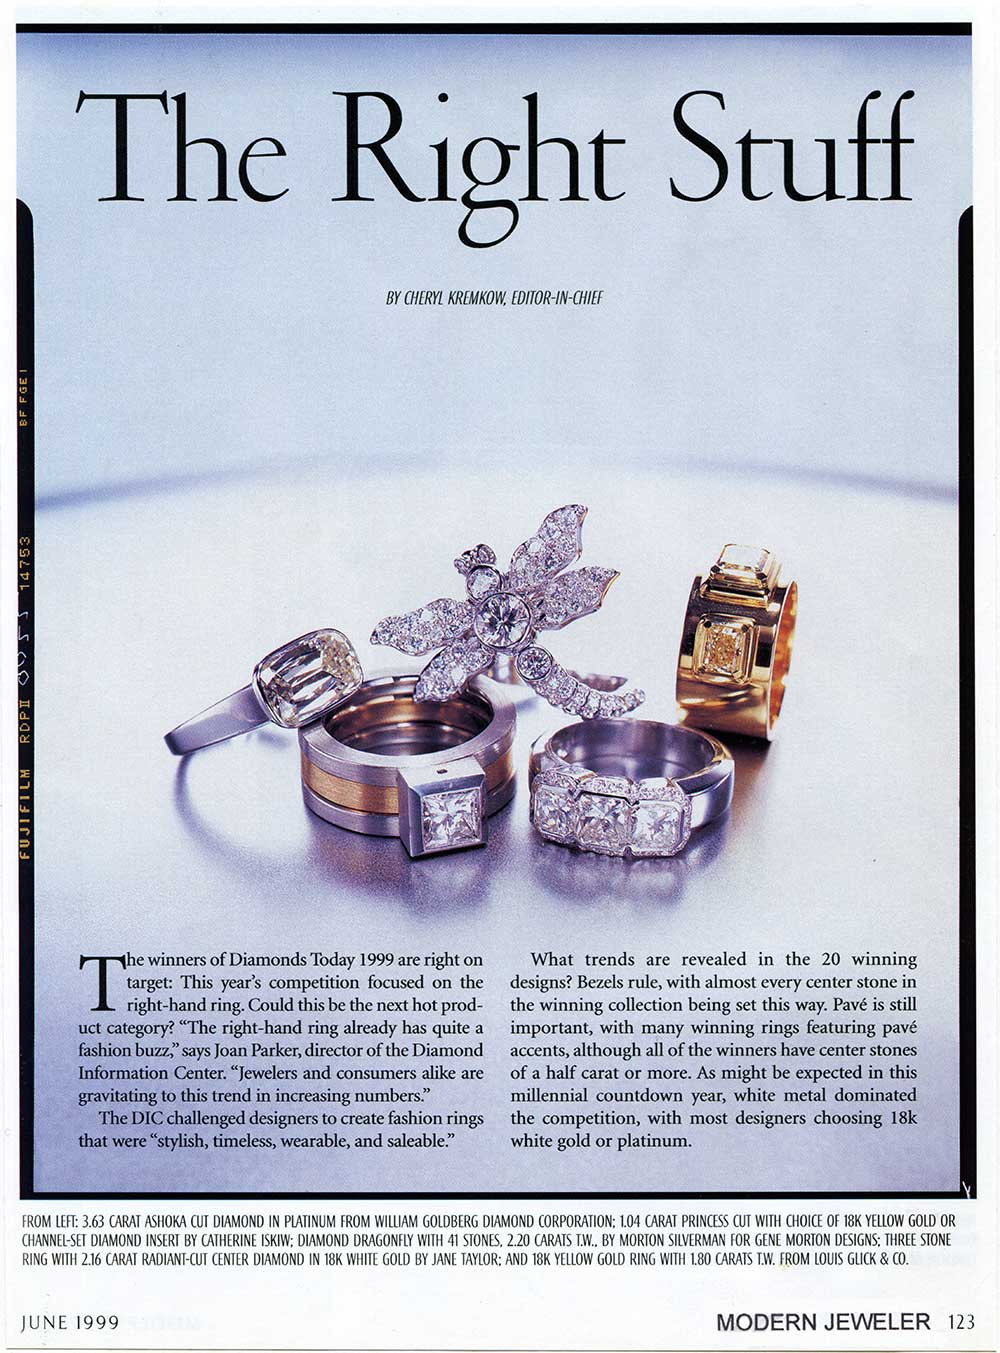 A JCK Trade magazine article showing a selection of large diamond jewelry including Catherine Iskiw Designs Parallel Ring.